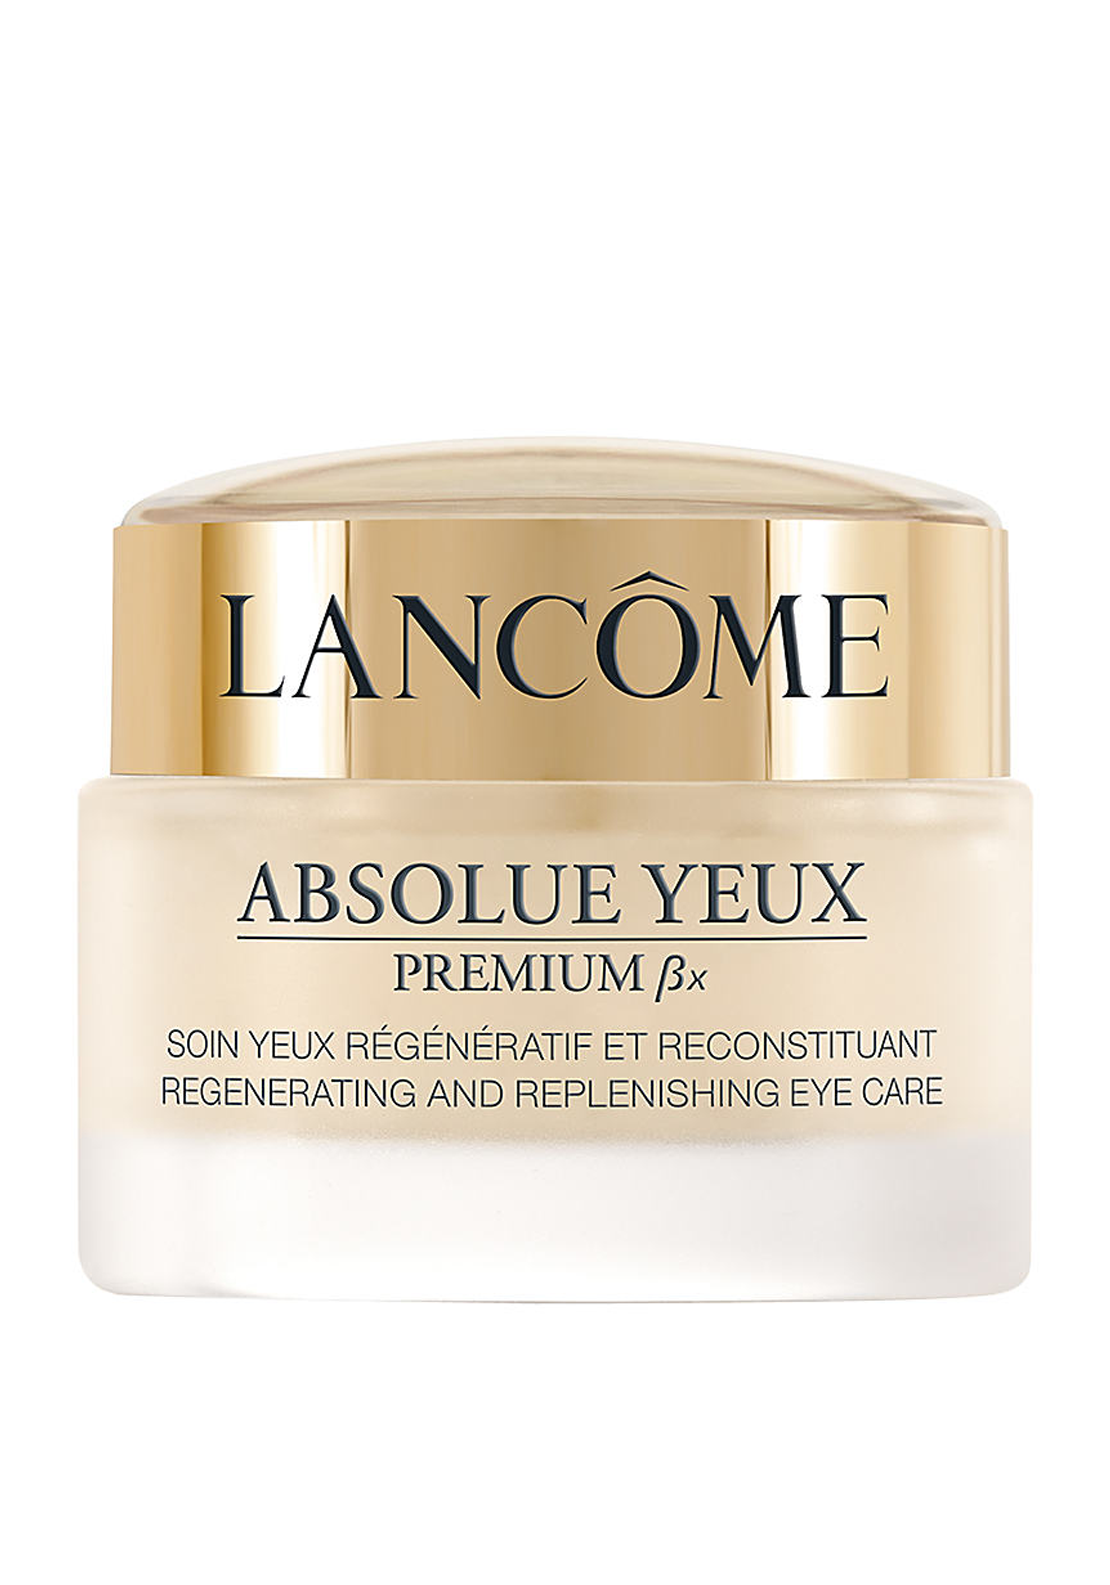 Lancome Absolue Yeux Premium Eye Cream, 20ml